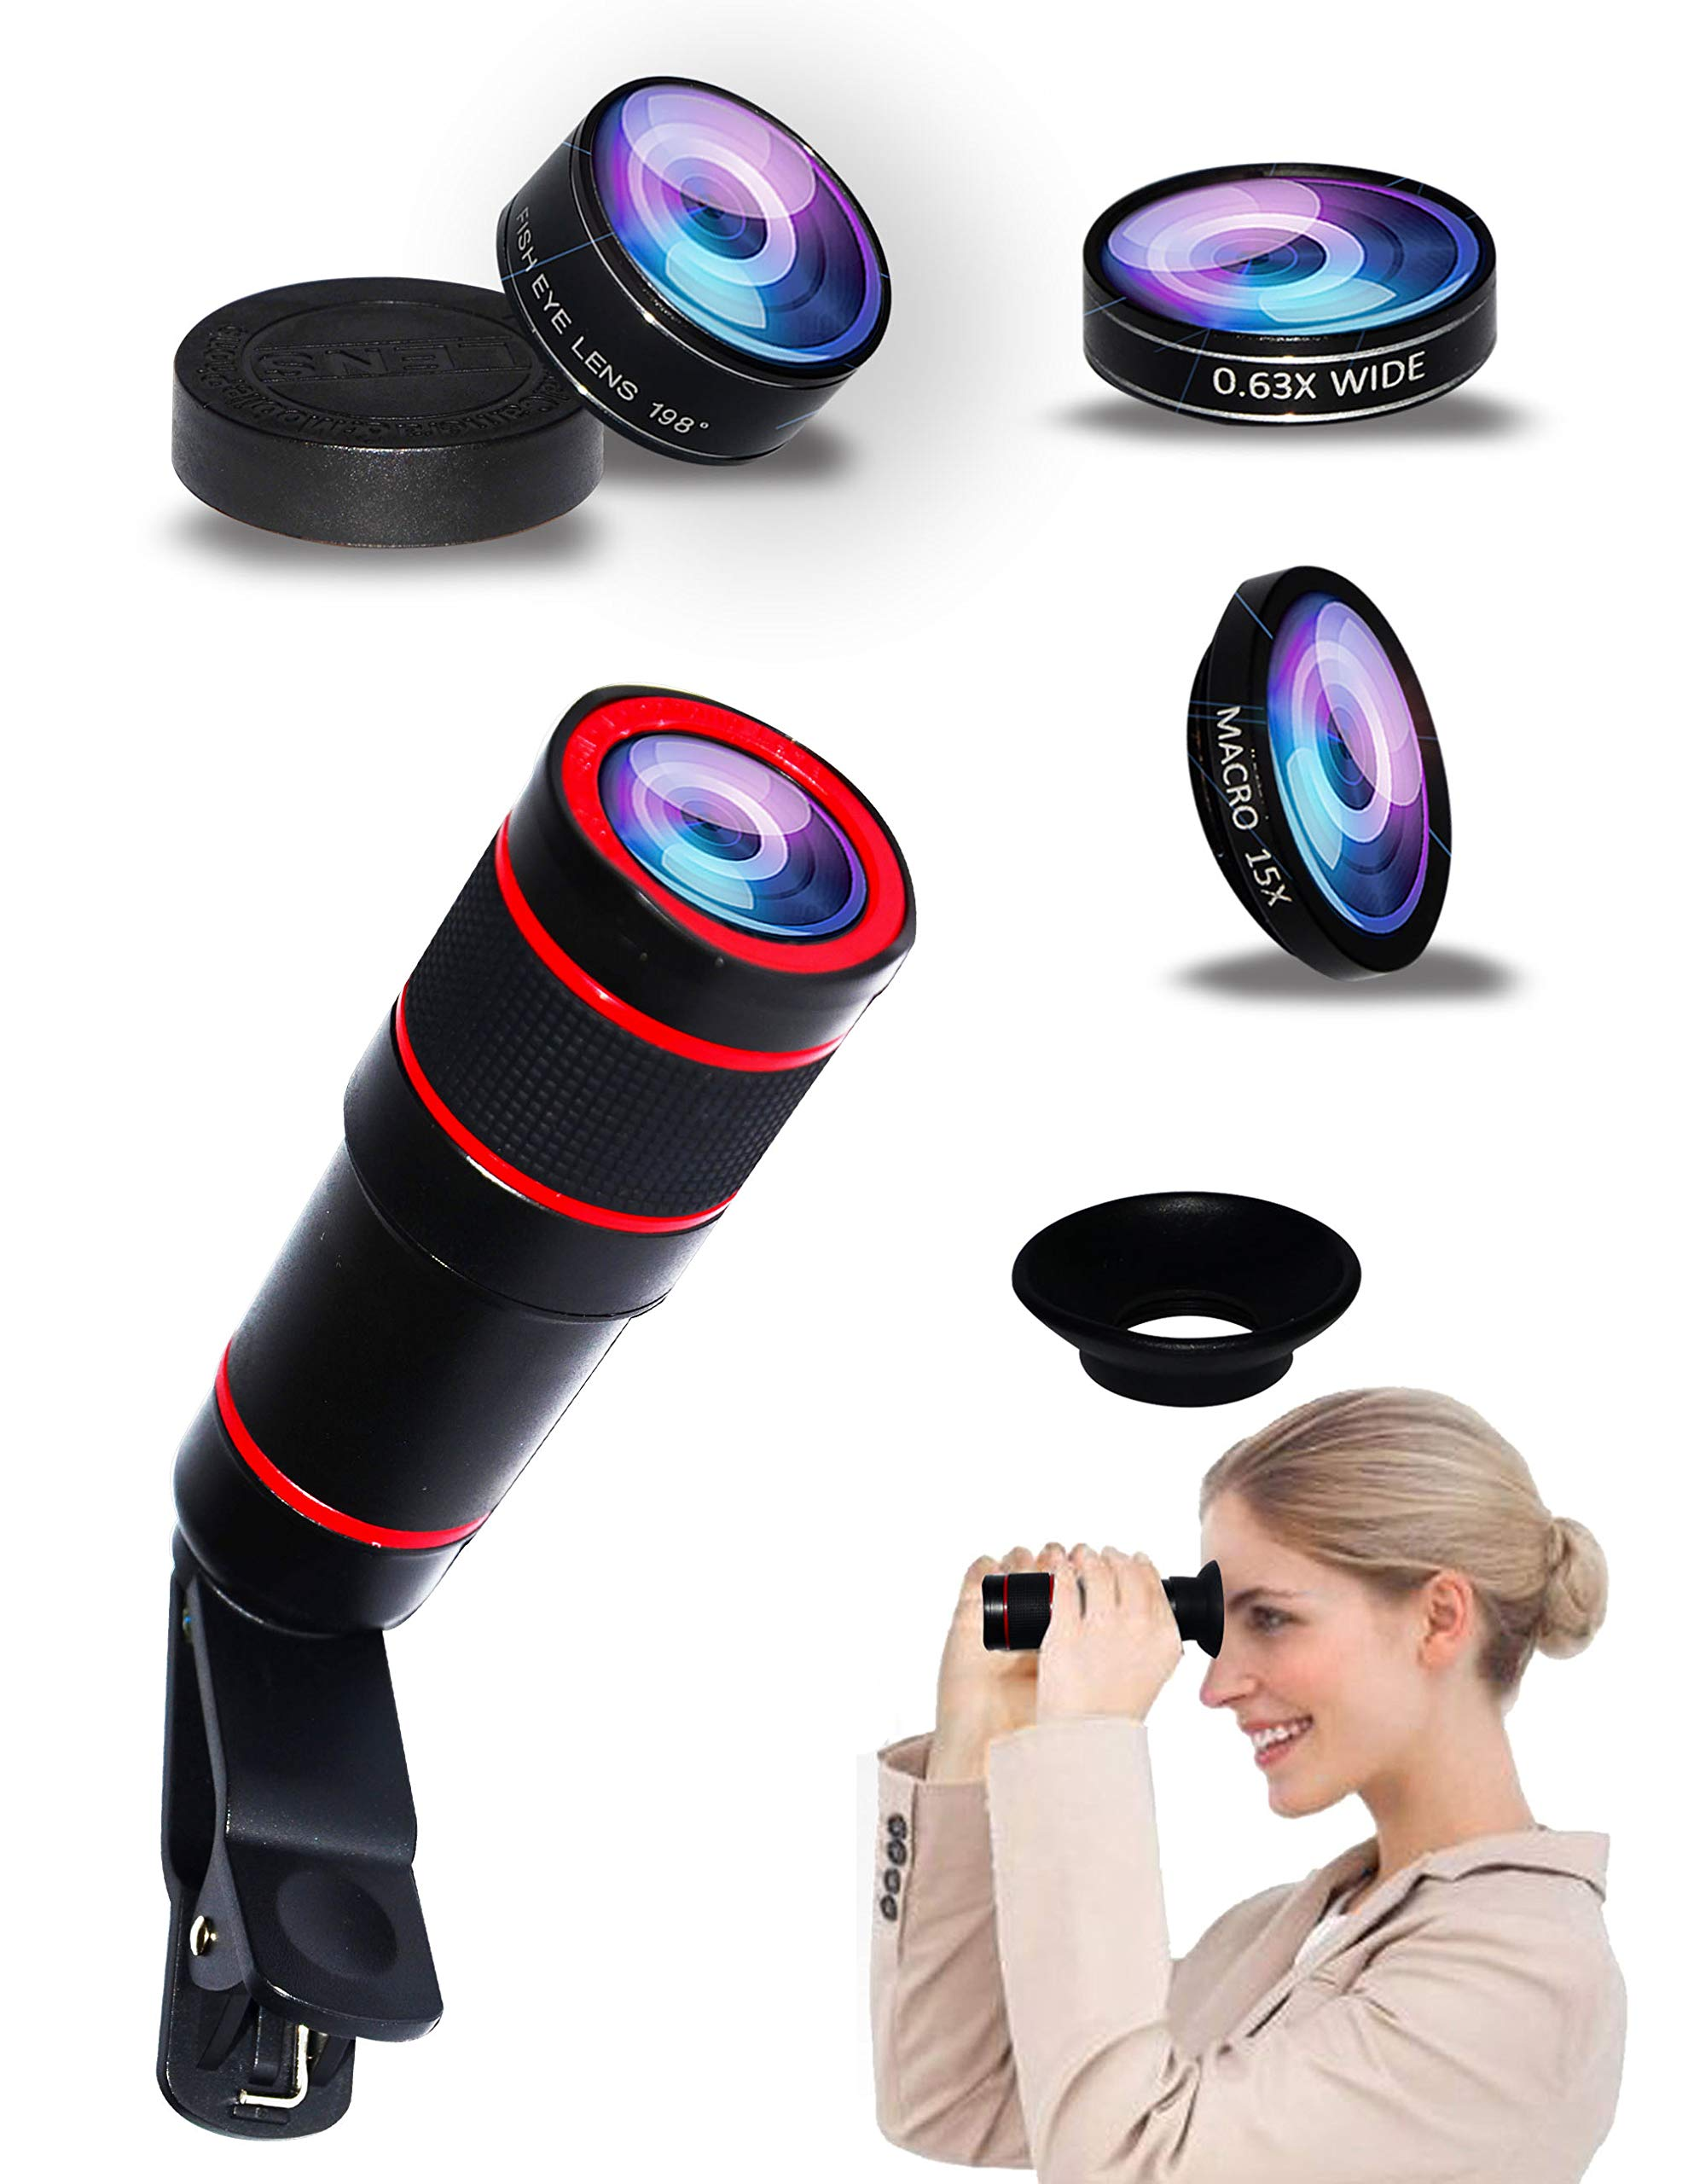 5-in-1 Phone Lens, 14x telephoto Lens, 0.63x Wide-Angle Lens, Macro Lens, fisheye Lens, Eye mask, Telescope Camera Mobile Zoom lens compatible iPhone Samsung Galaxy Huawei and Most Android Smartphones